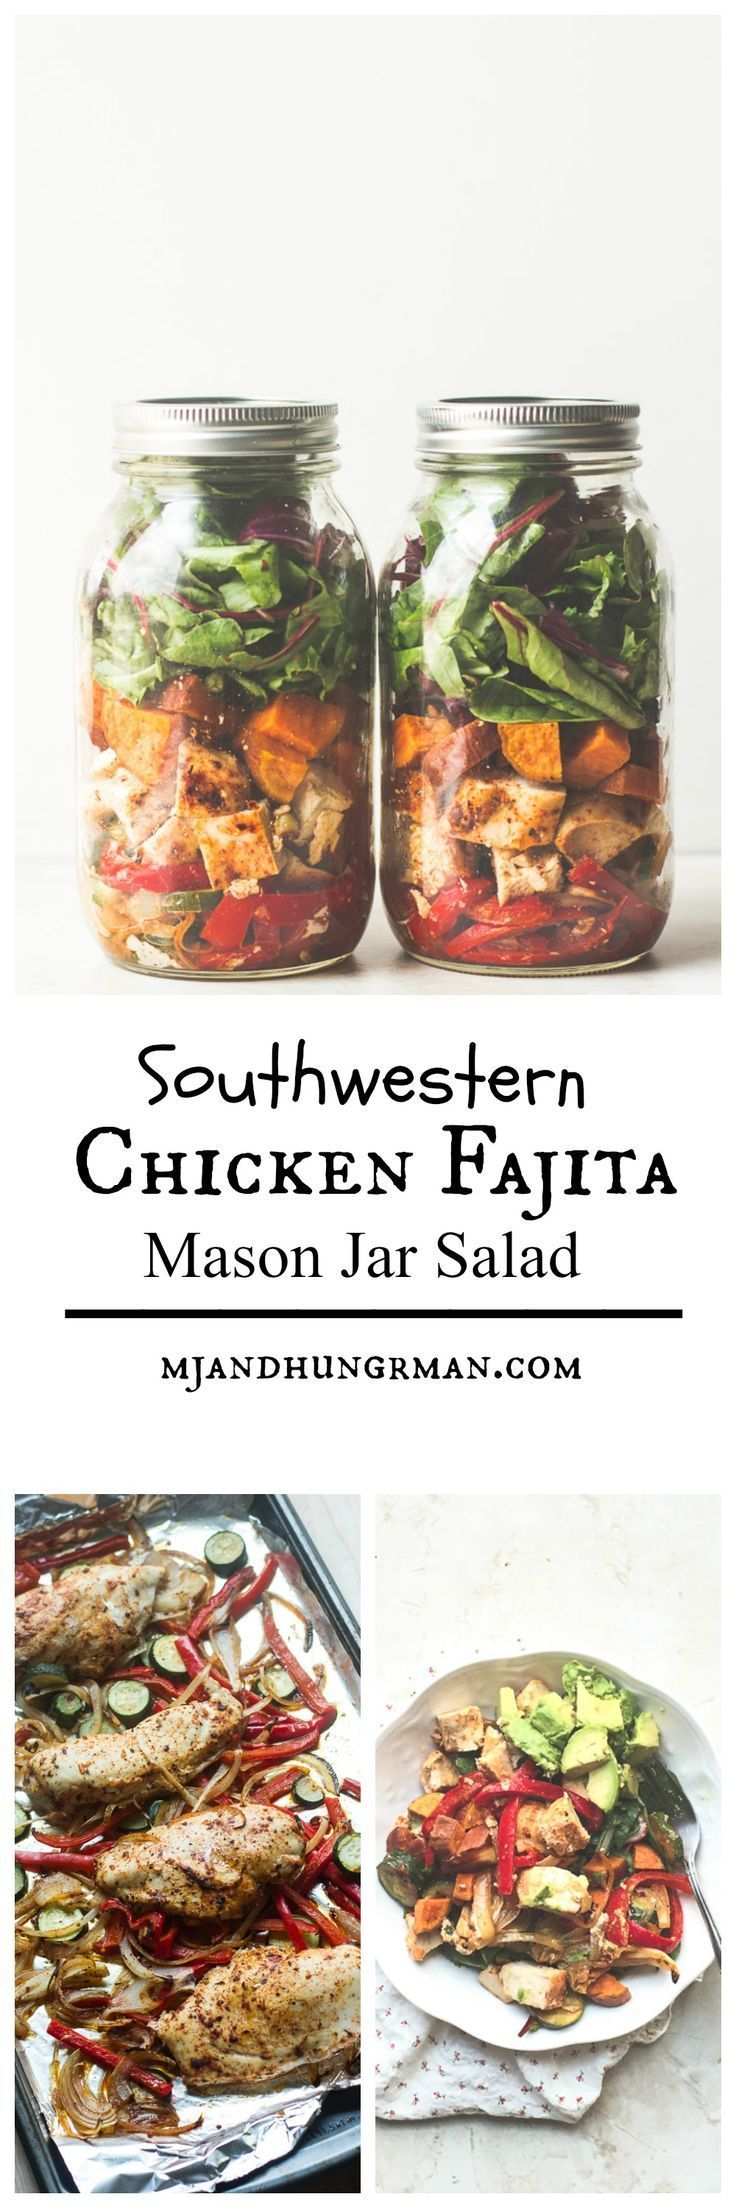 Southwestern Chicken Fajita mason Jar Salad - 25+ things to eat in a mason jar - NoBiggie.net